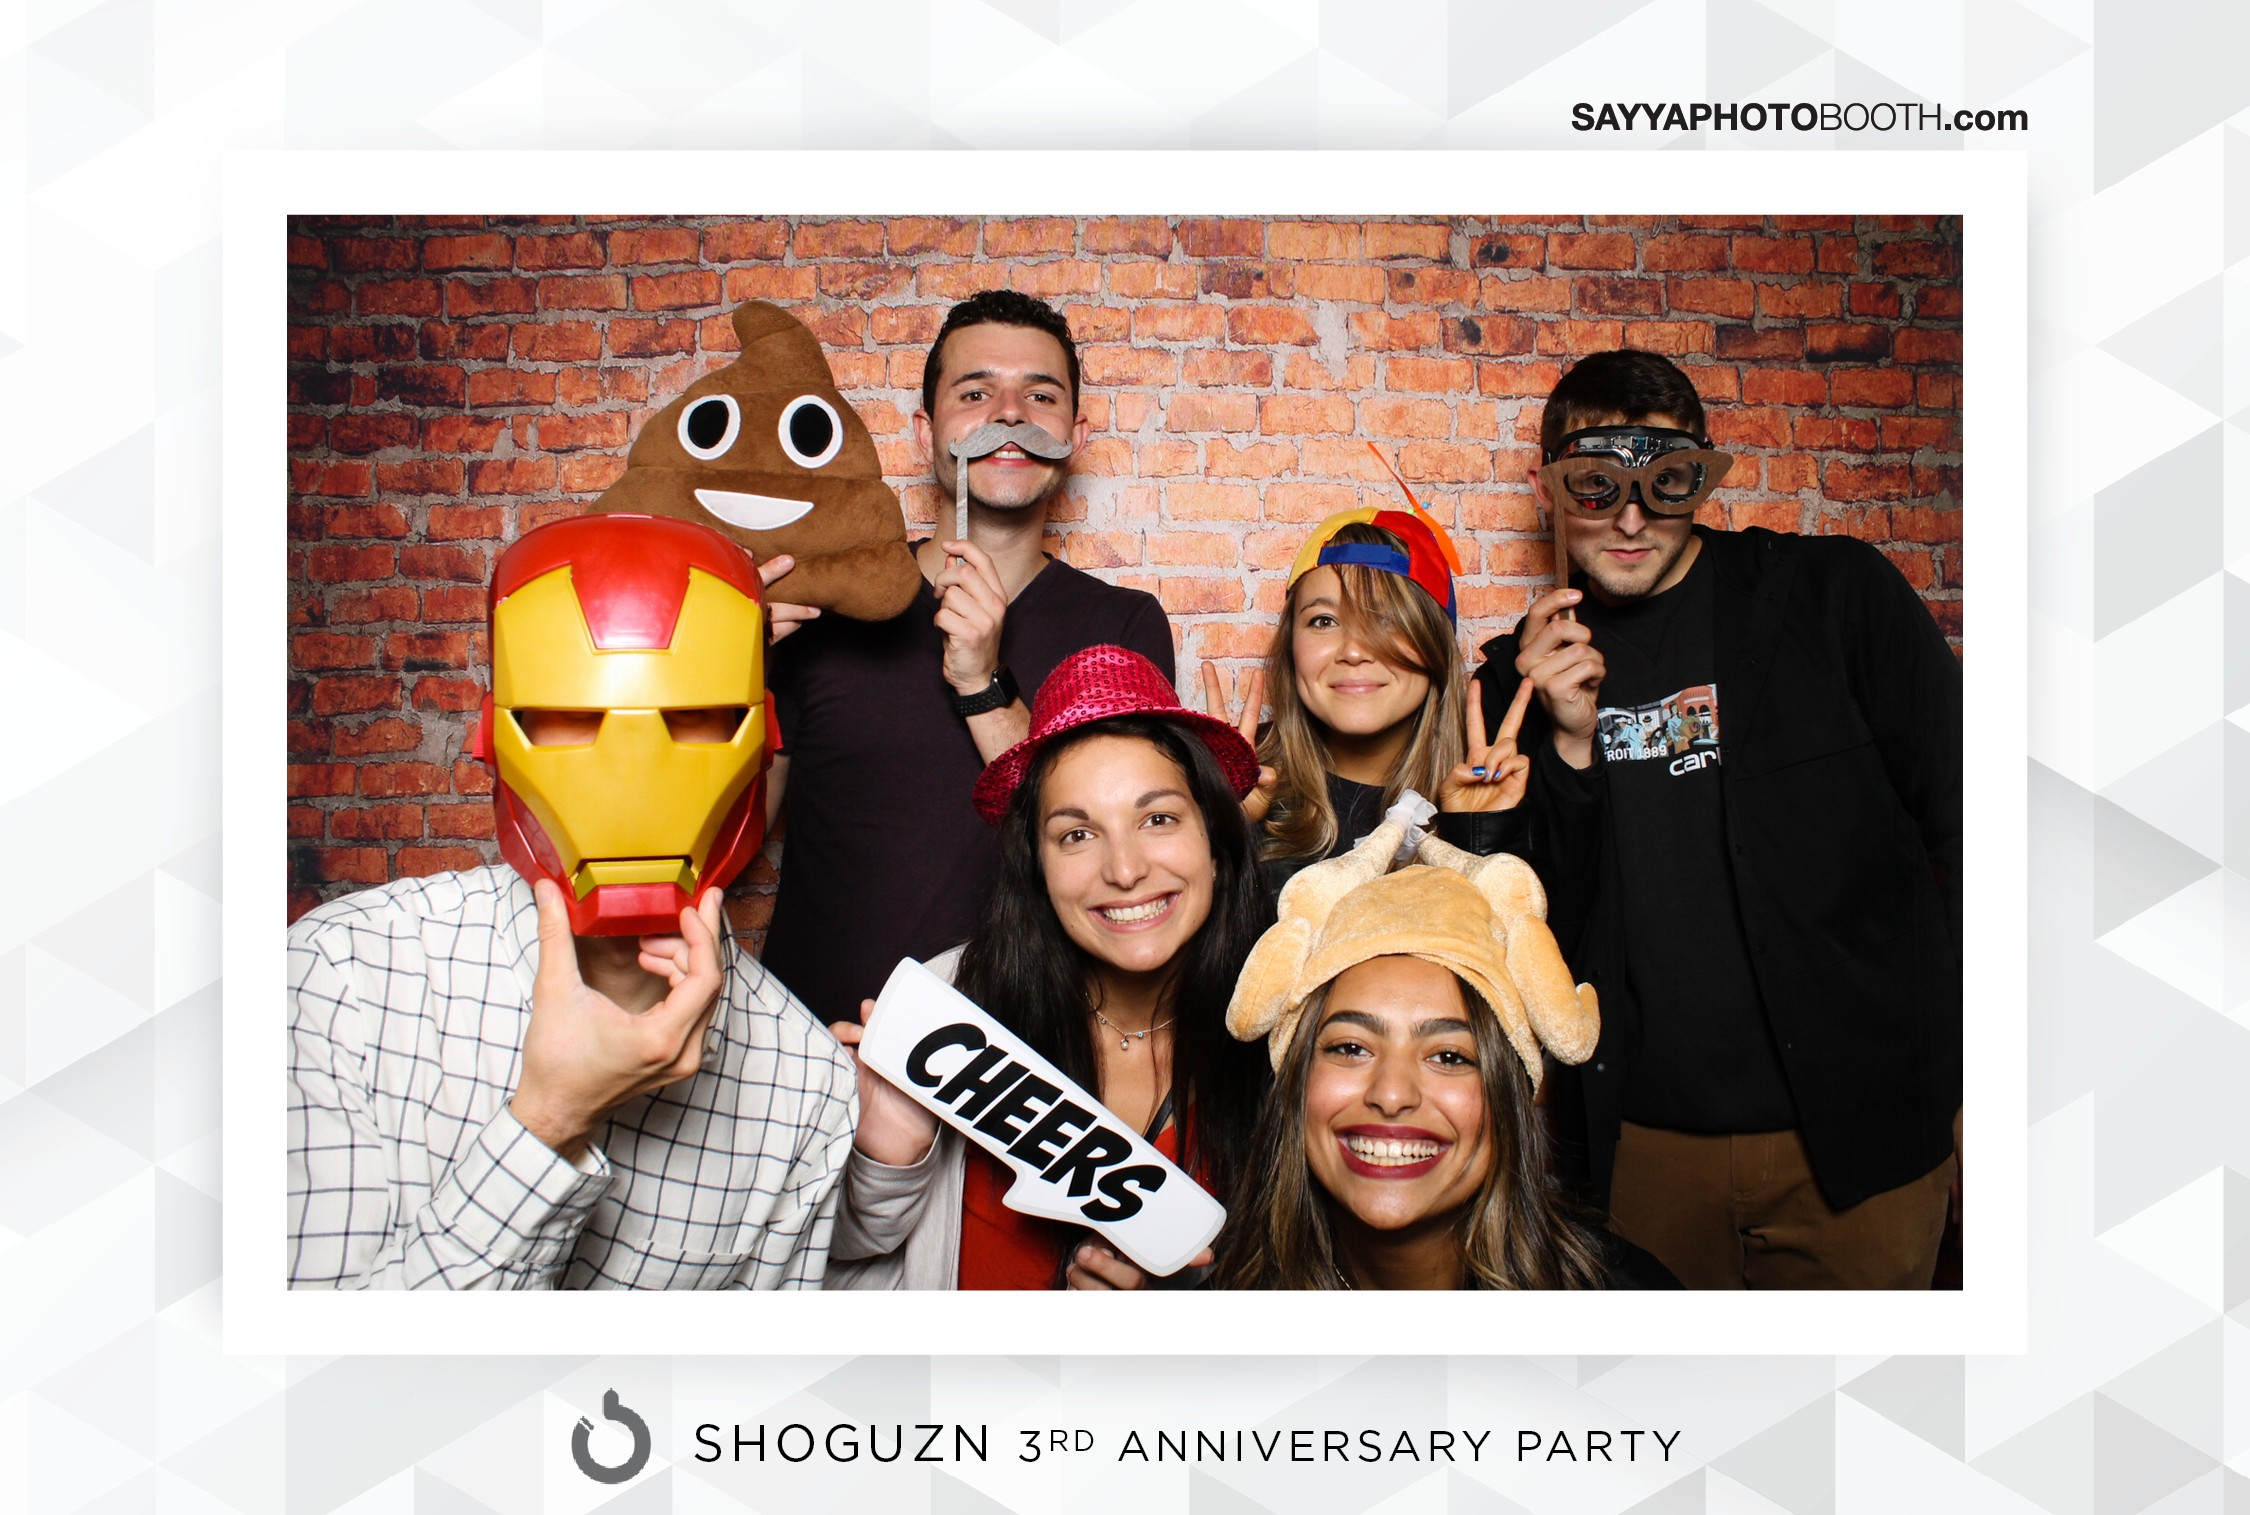 Shogun 3rd Anniversary Party